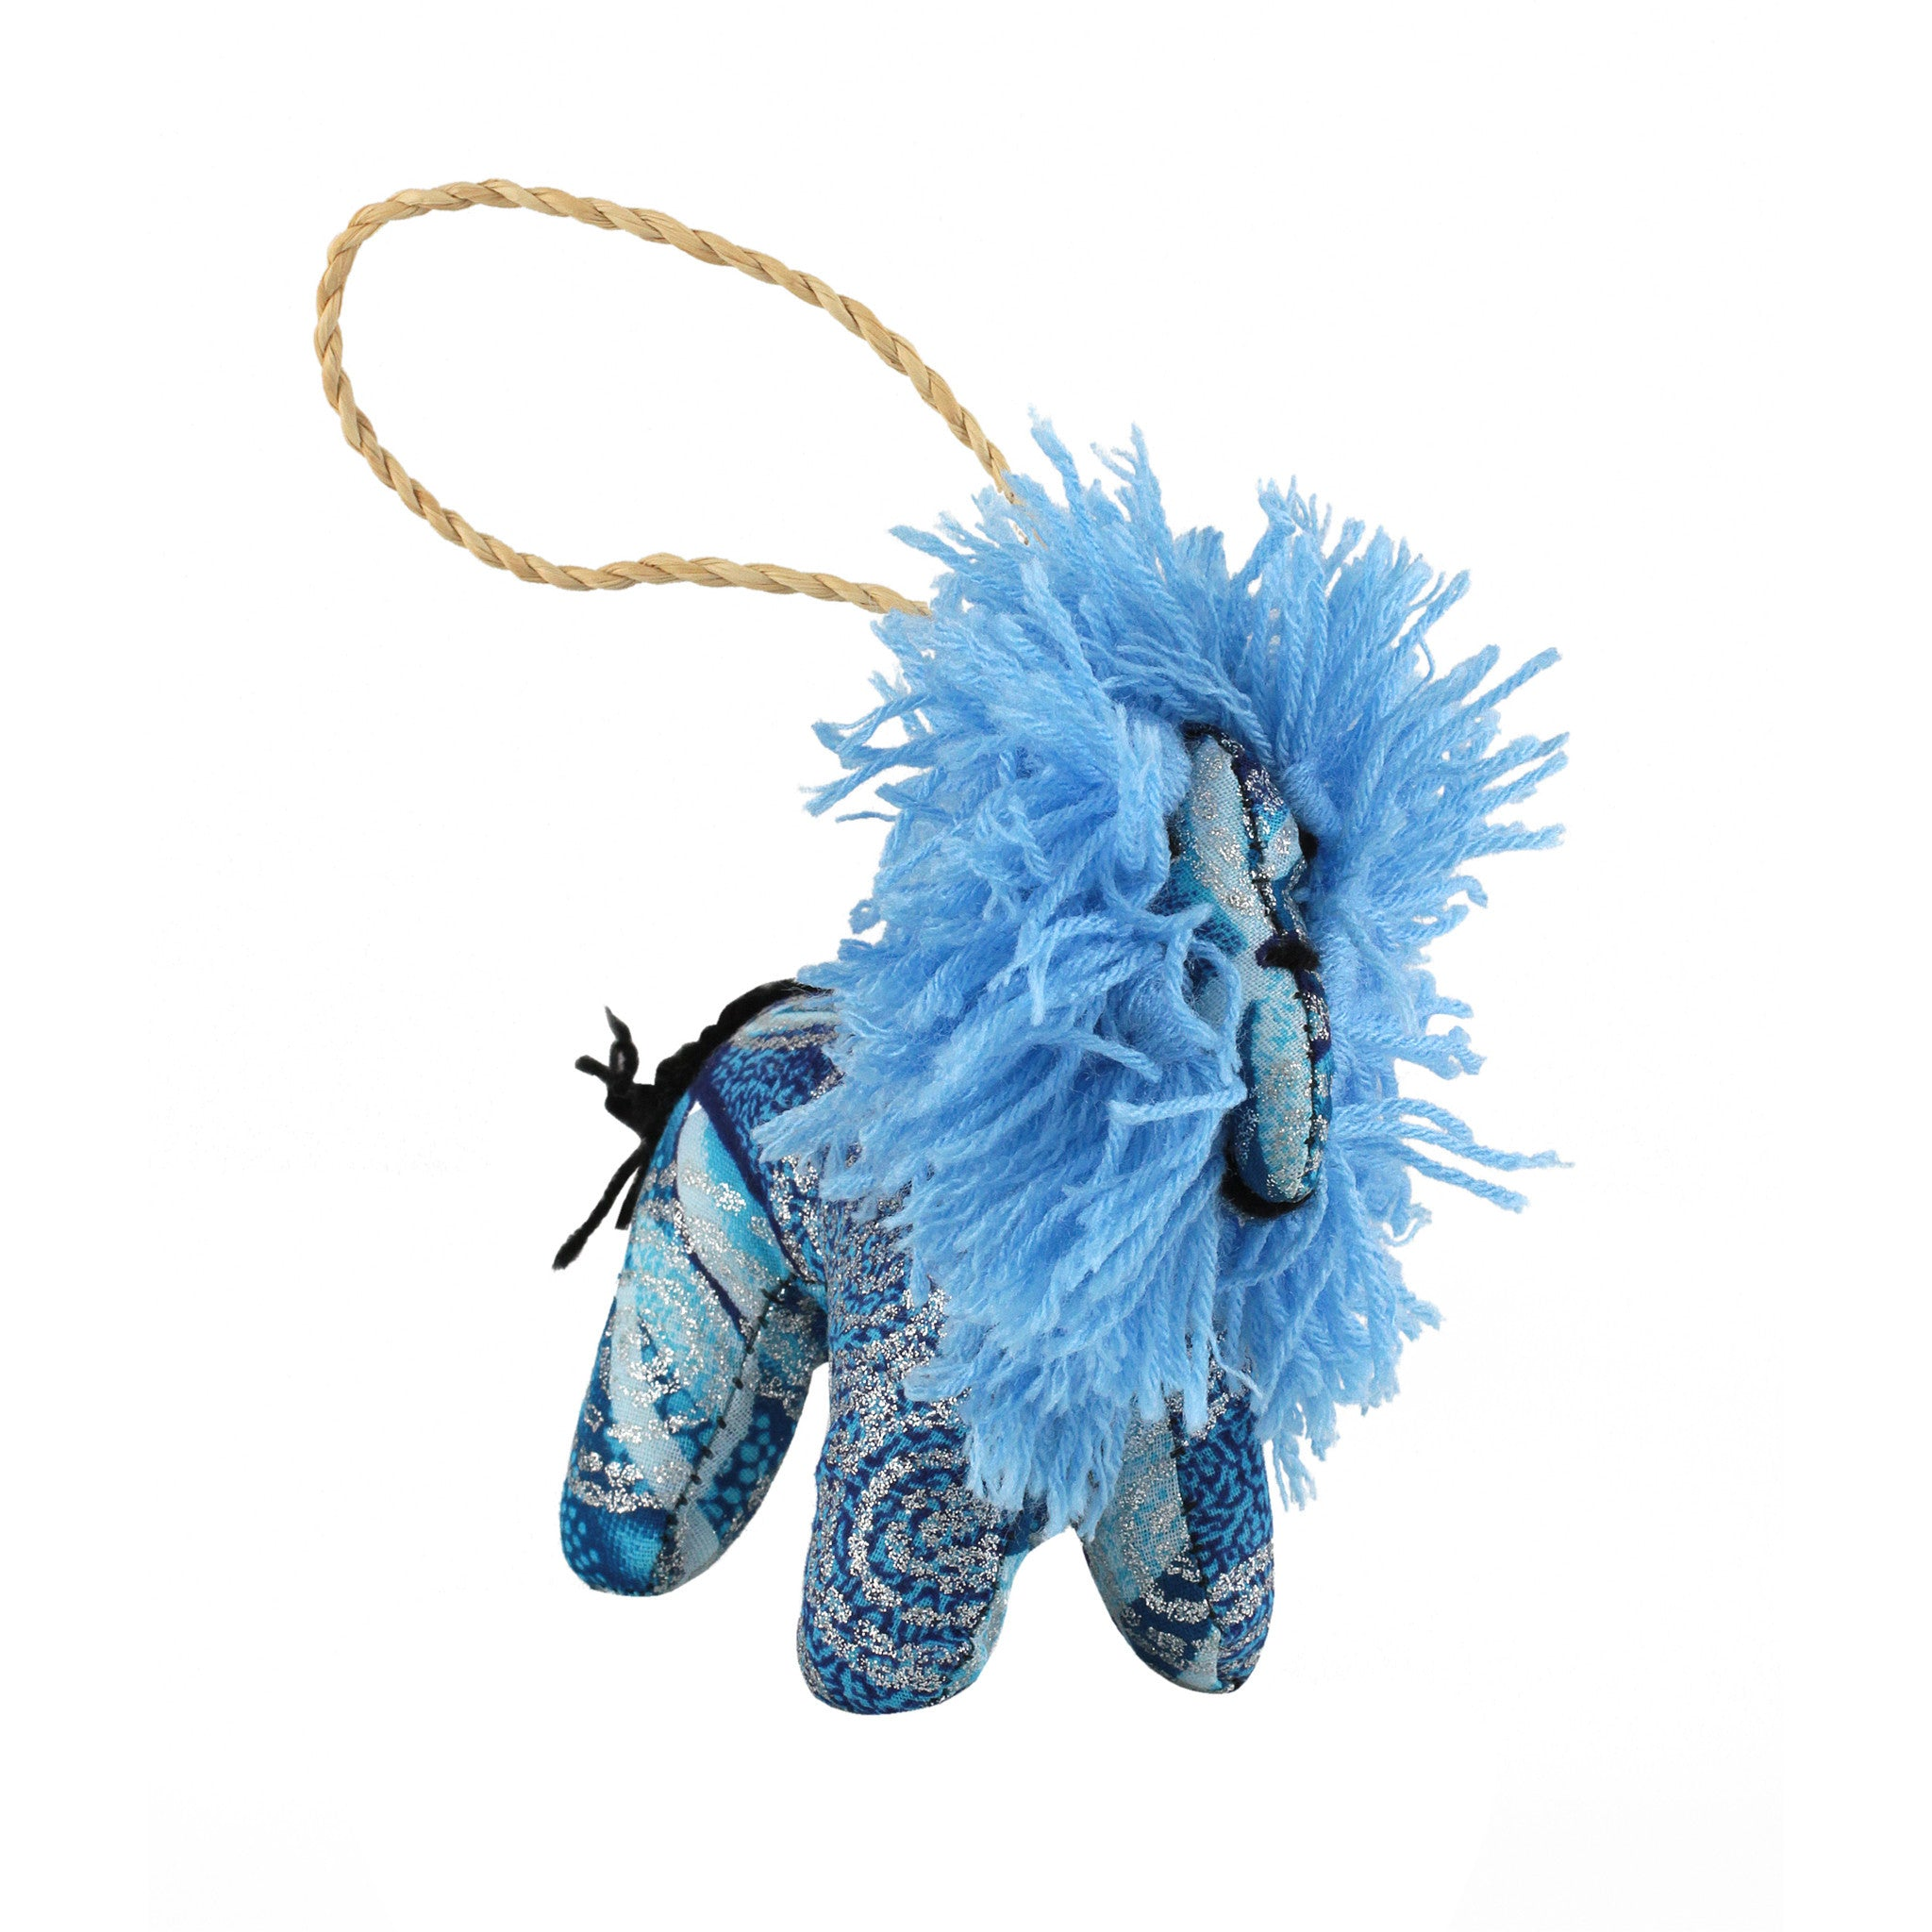 Frozen Lion: Hand Made Ugandan Stuffed Animal Christmas Ornament